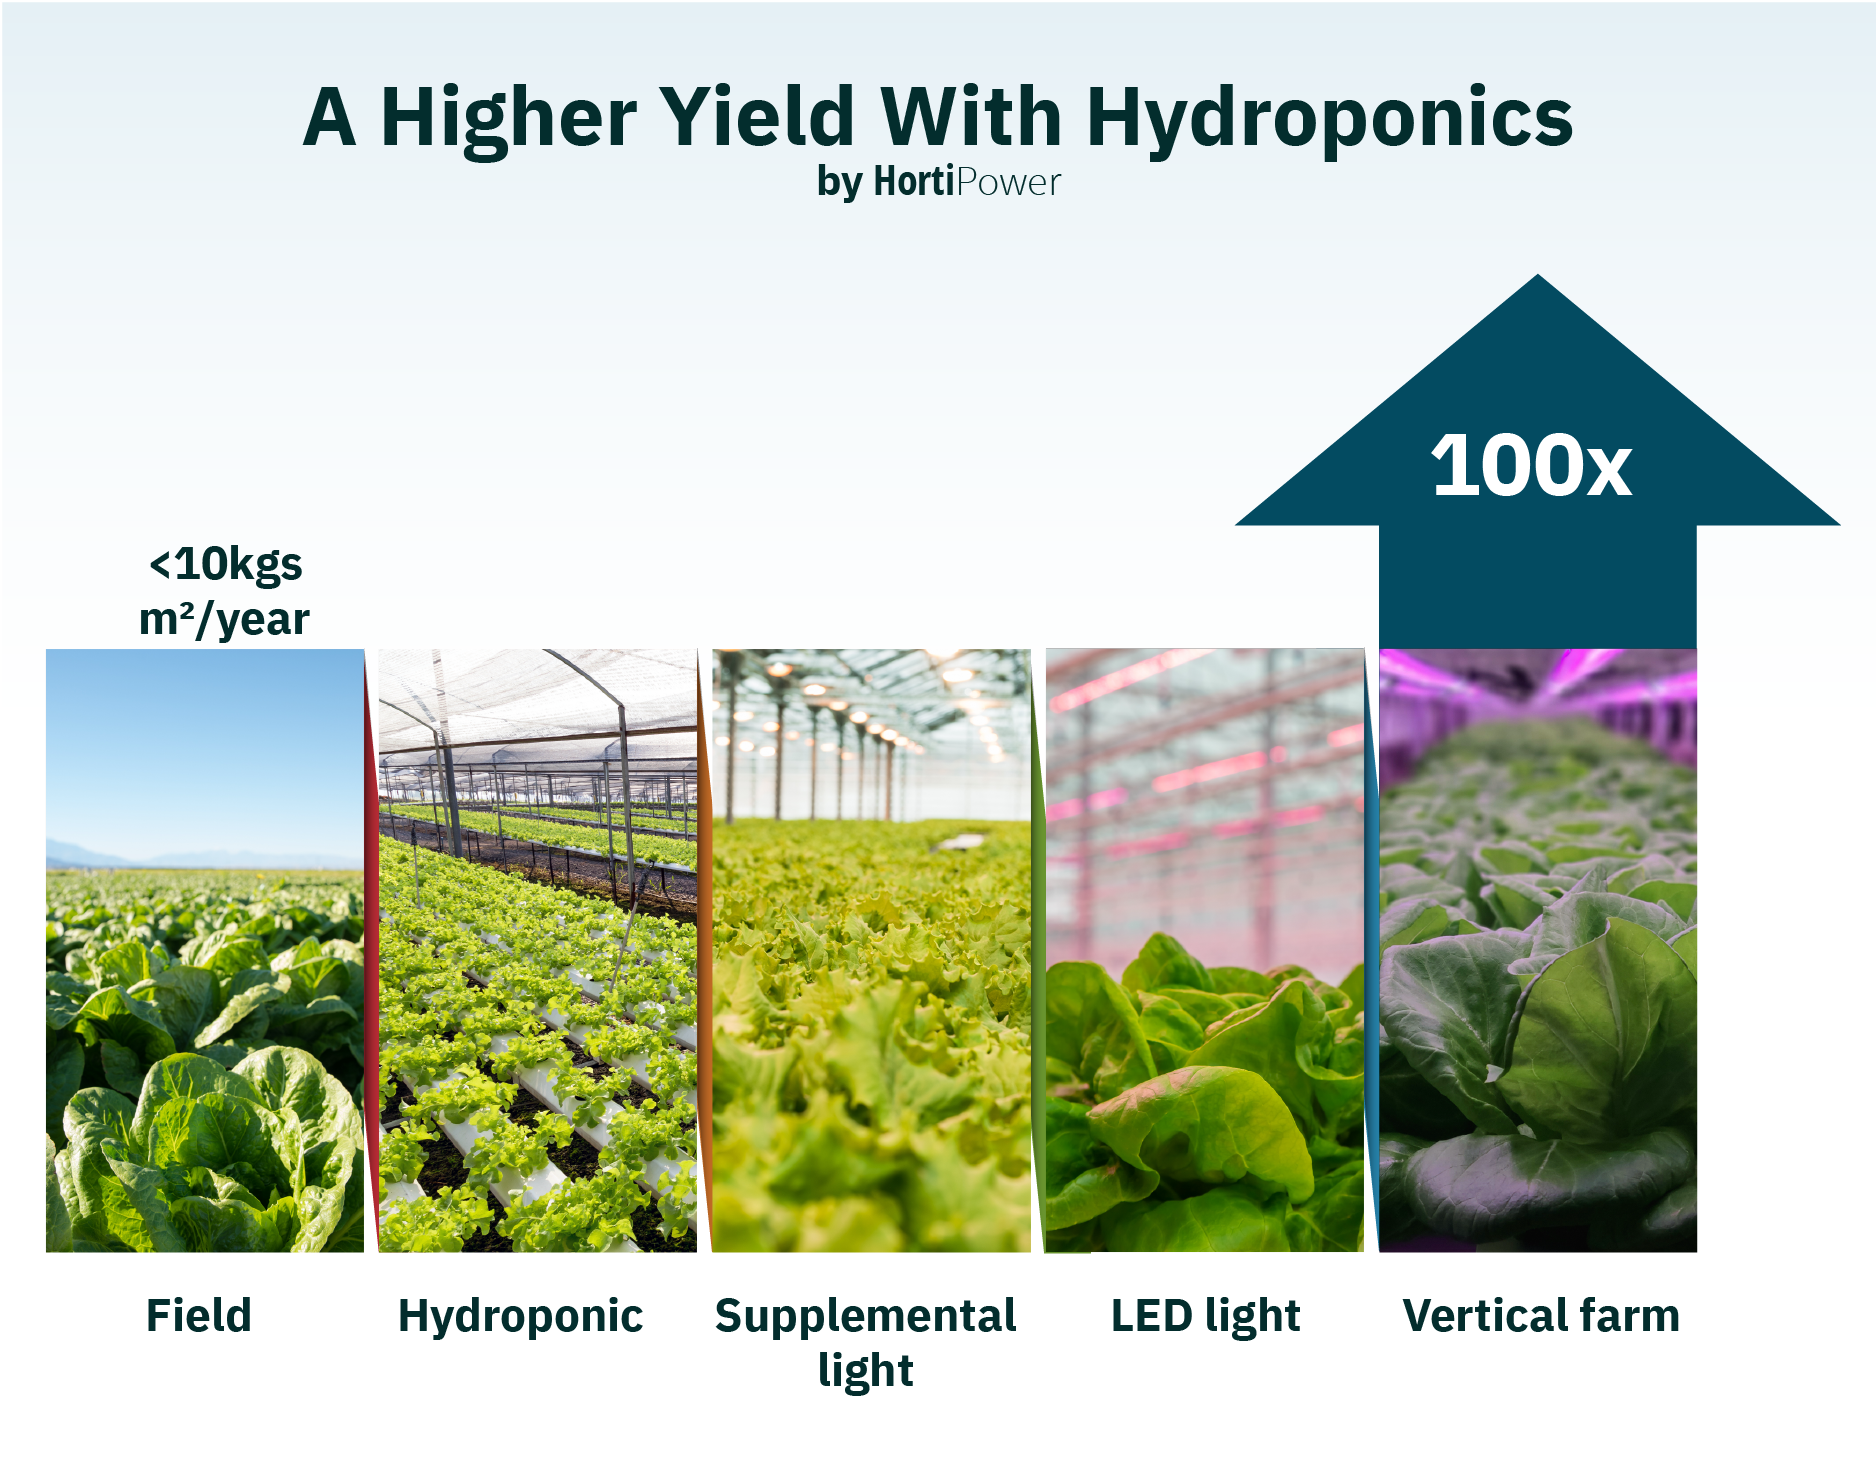 a higher yield with hydroponics and grow light